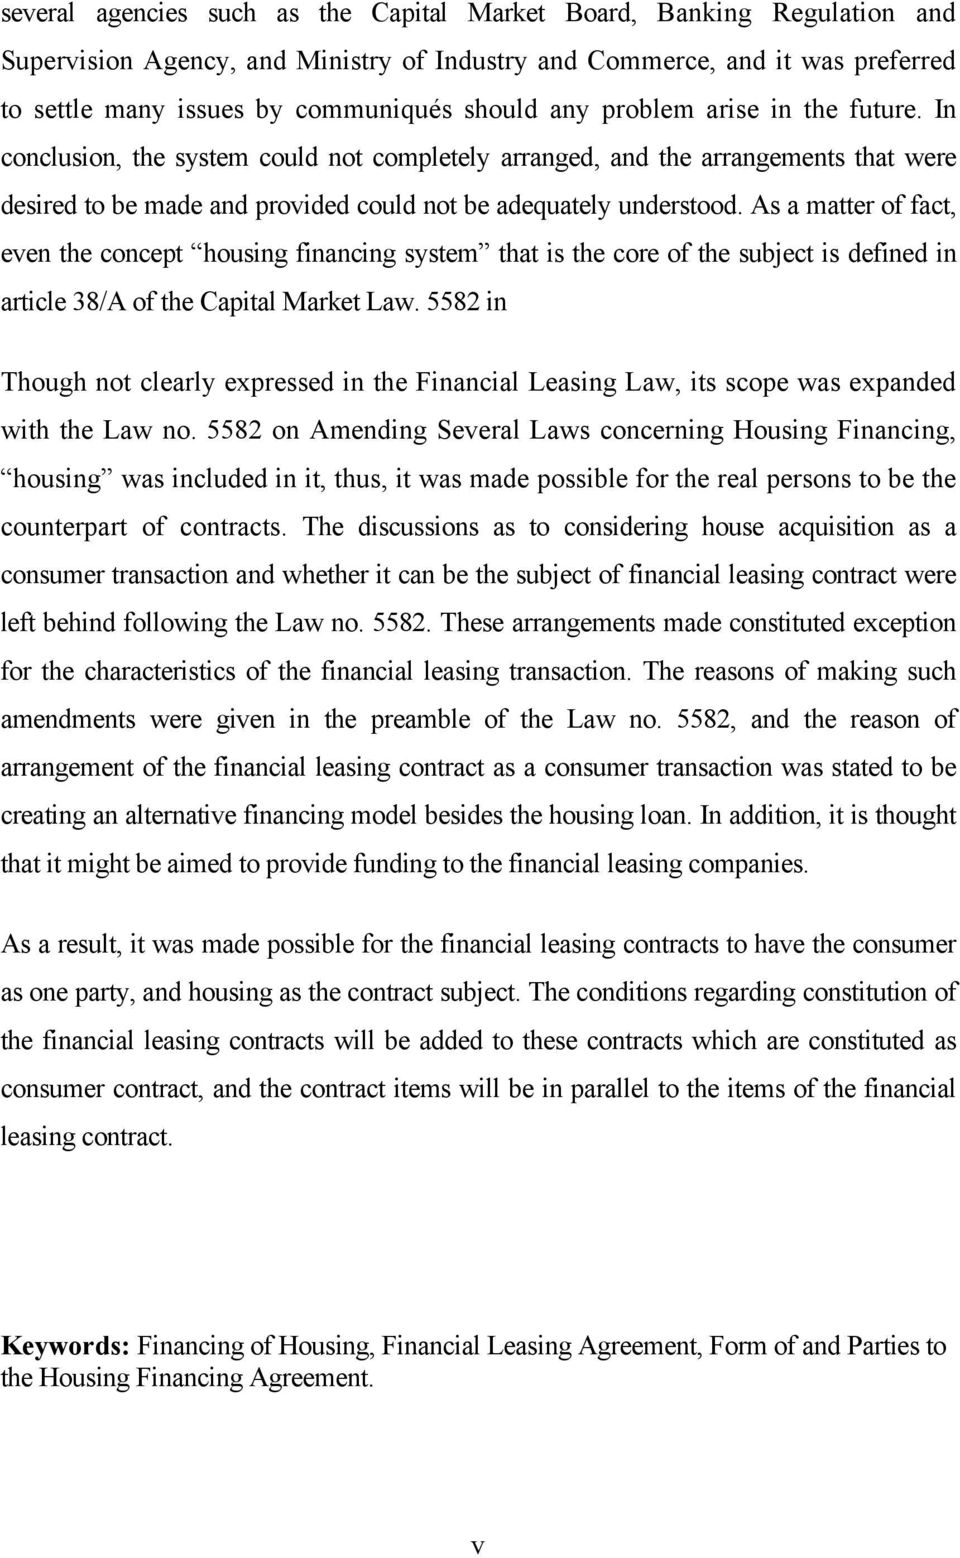 As a matter of fact, even the concept housing financing system that is the core of the subject is defined in article 38/A of the Capital Market Law.